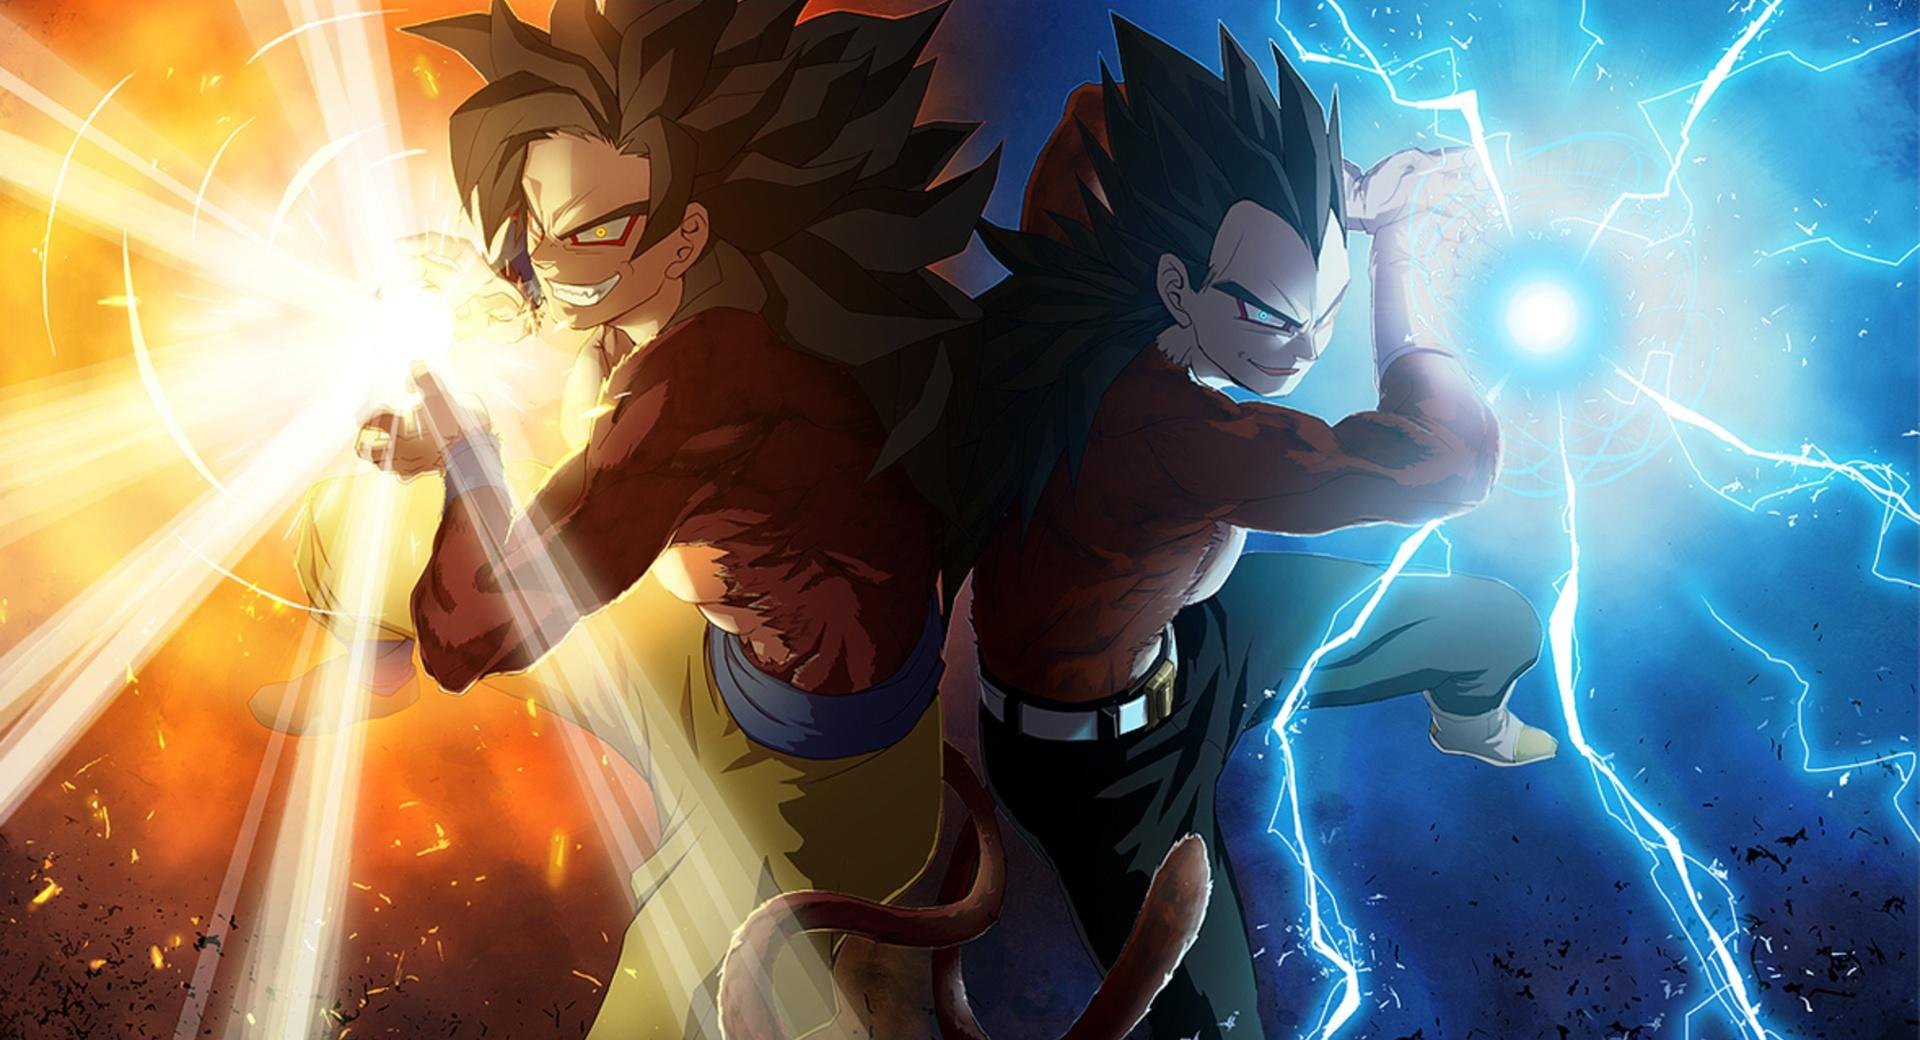 Vegeta and Goku by Madan wallpapers HD quality